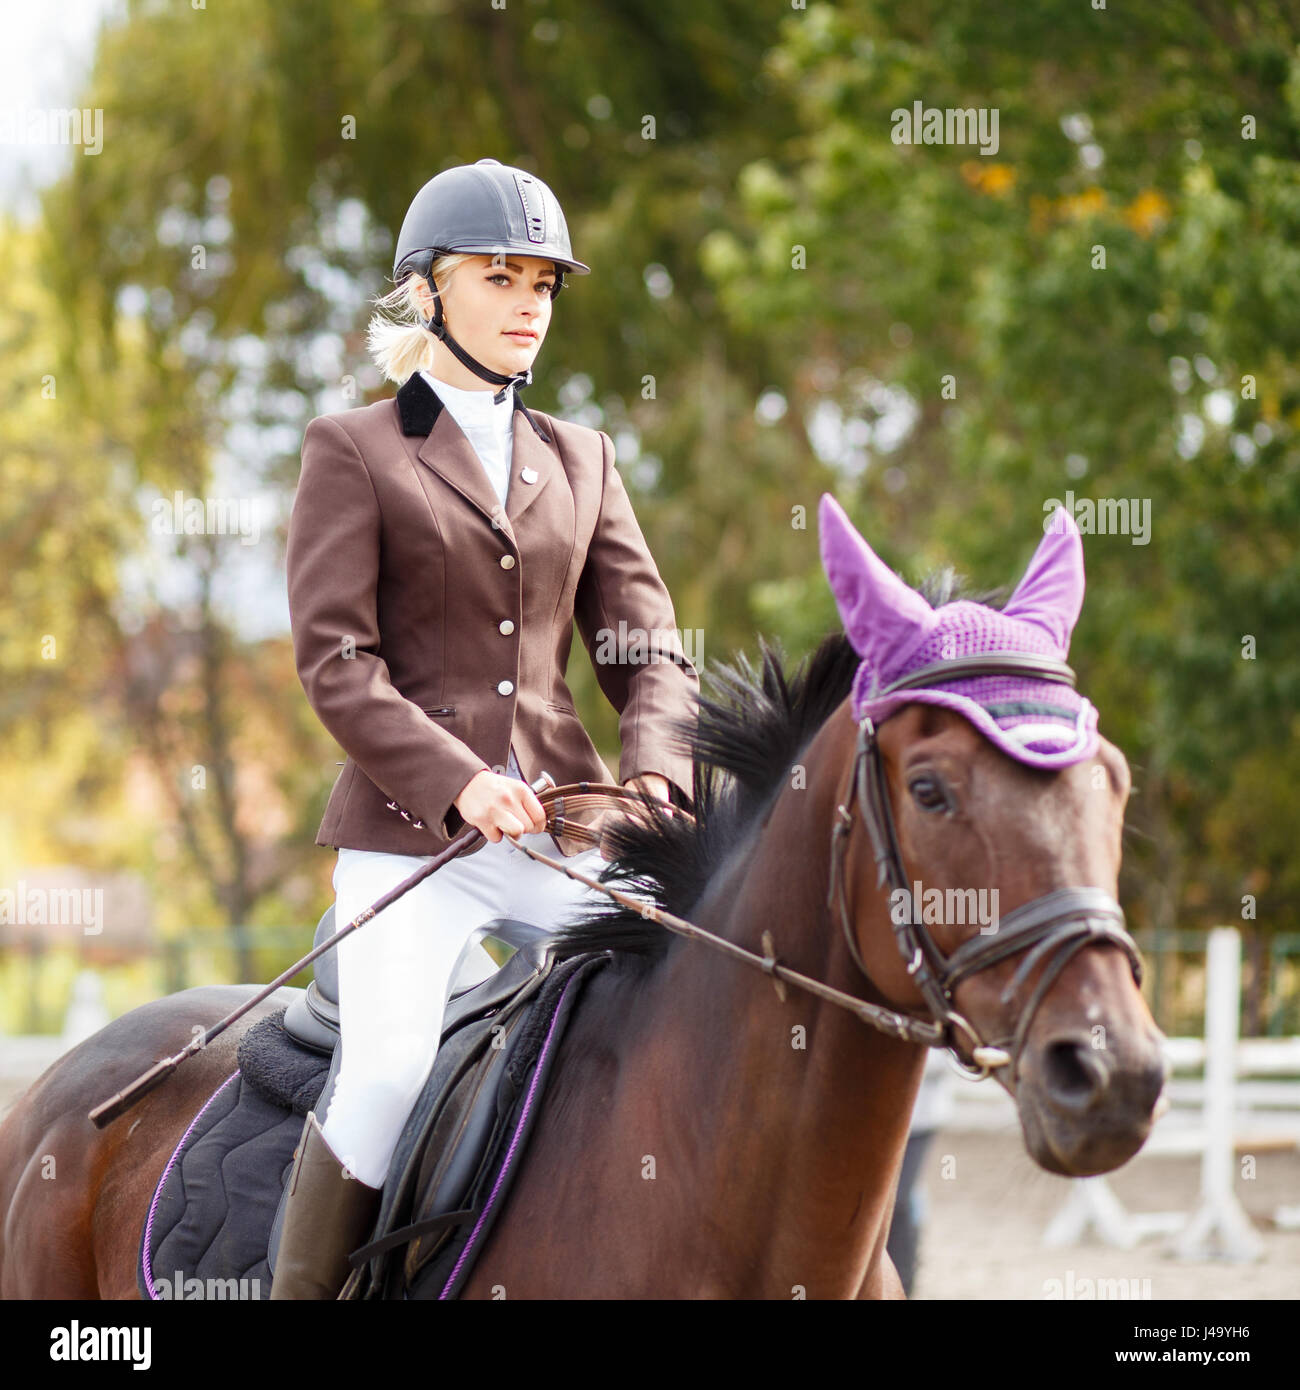 Young rider girl on horse at dressage competition. Equestrian sport background - Stock Image